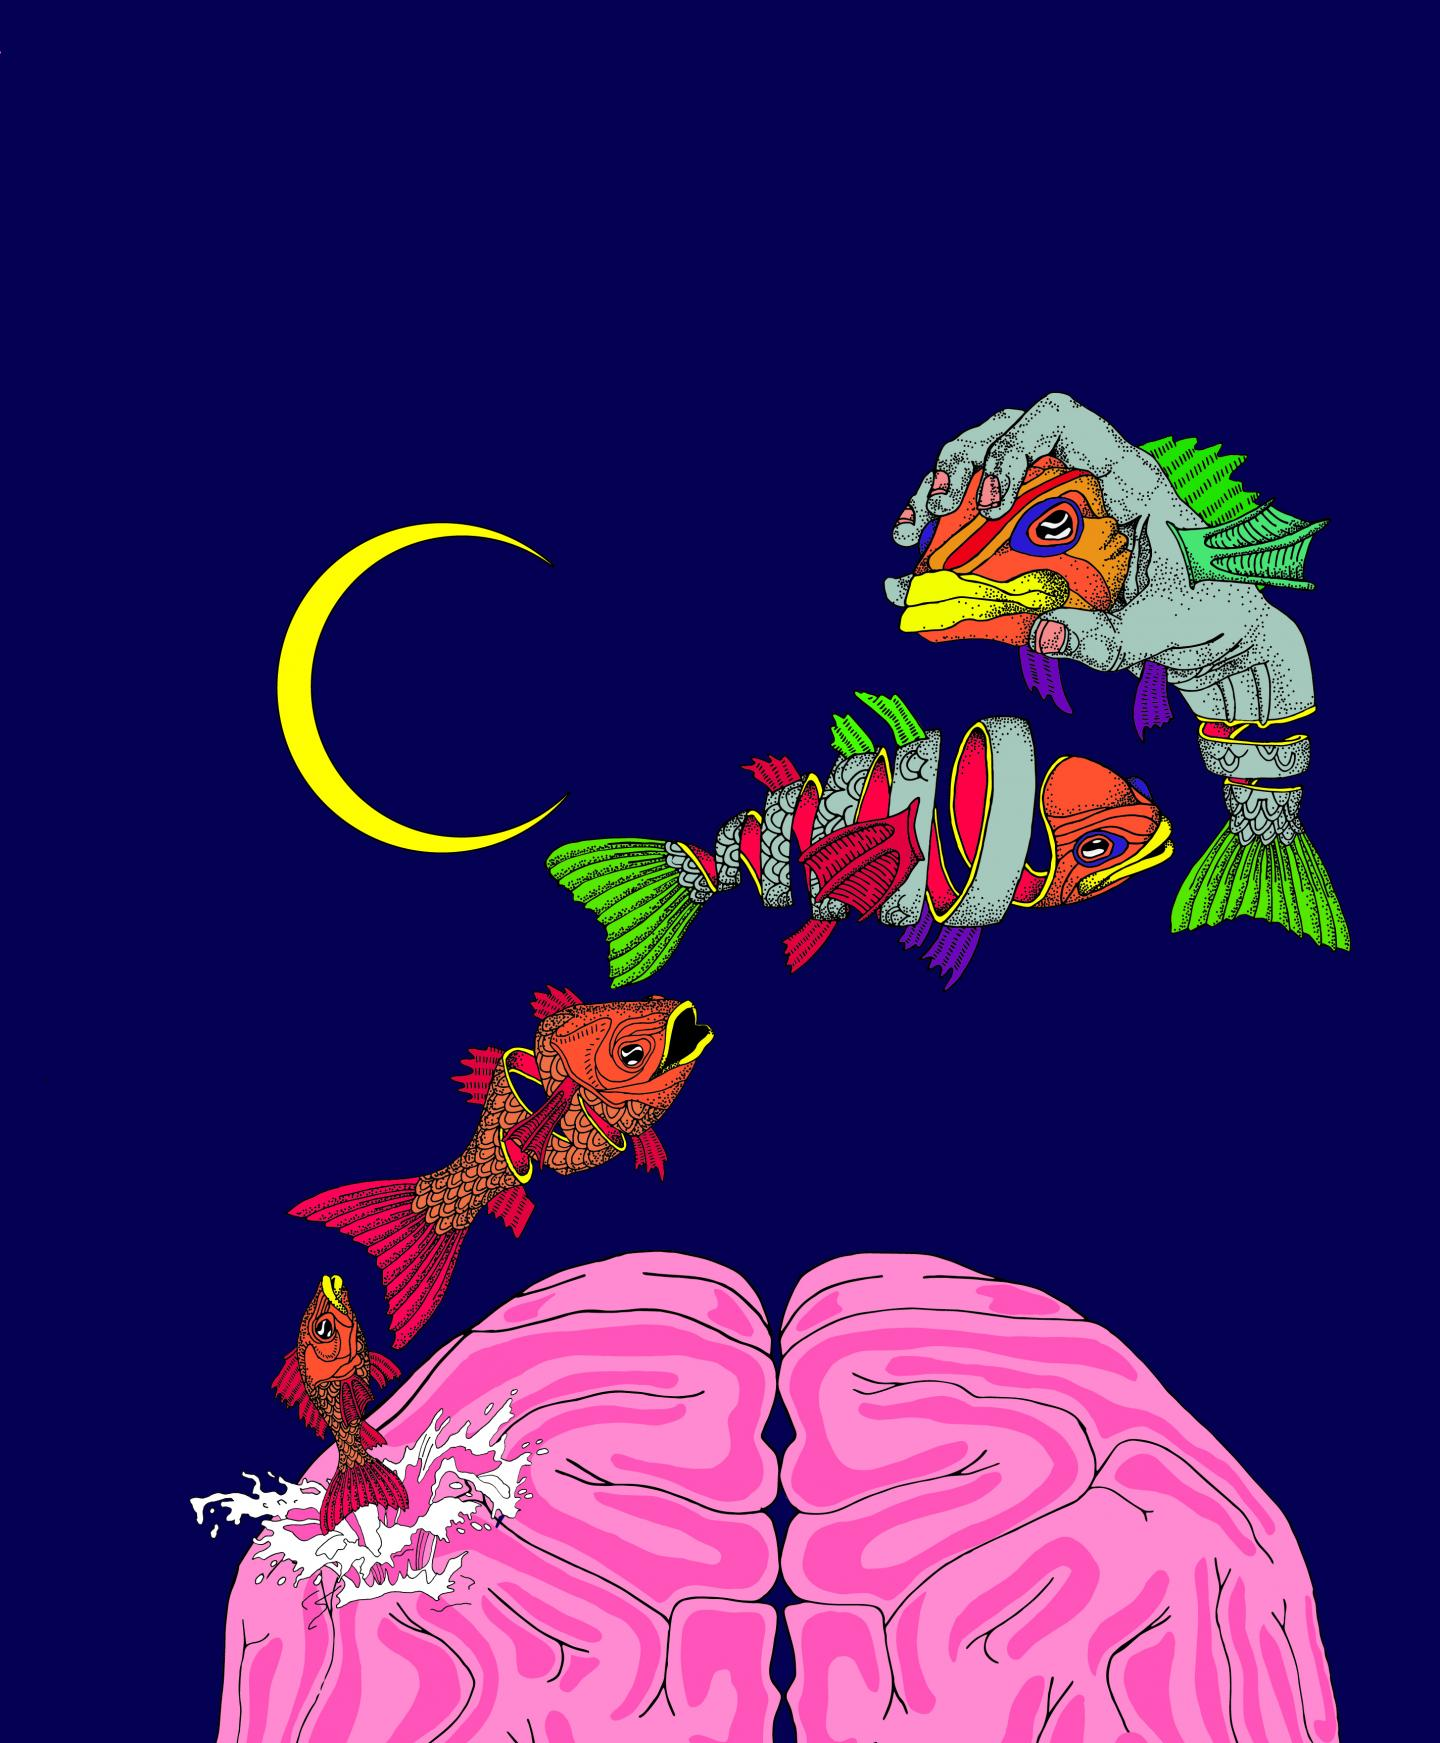 Illustration of a dream according to the overfitted brain hypothesis